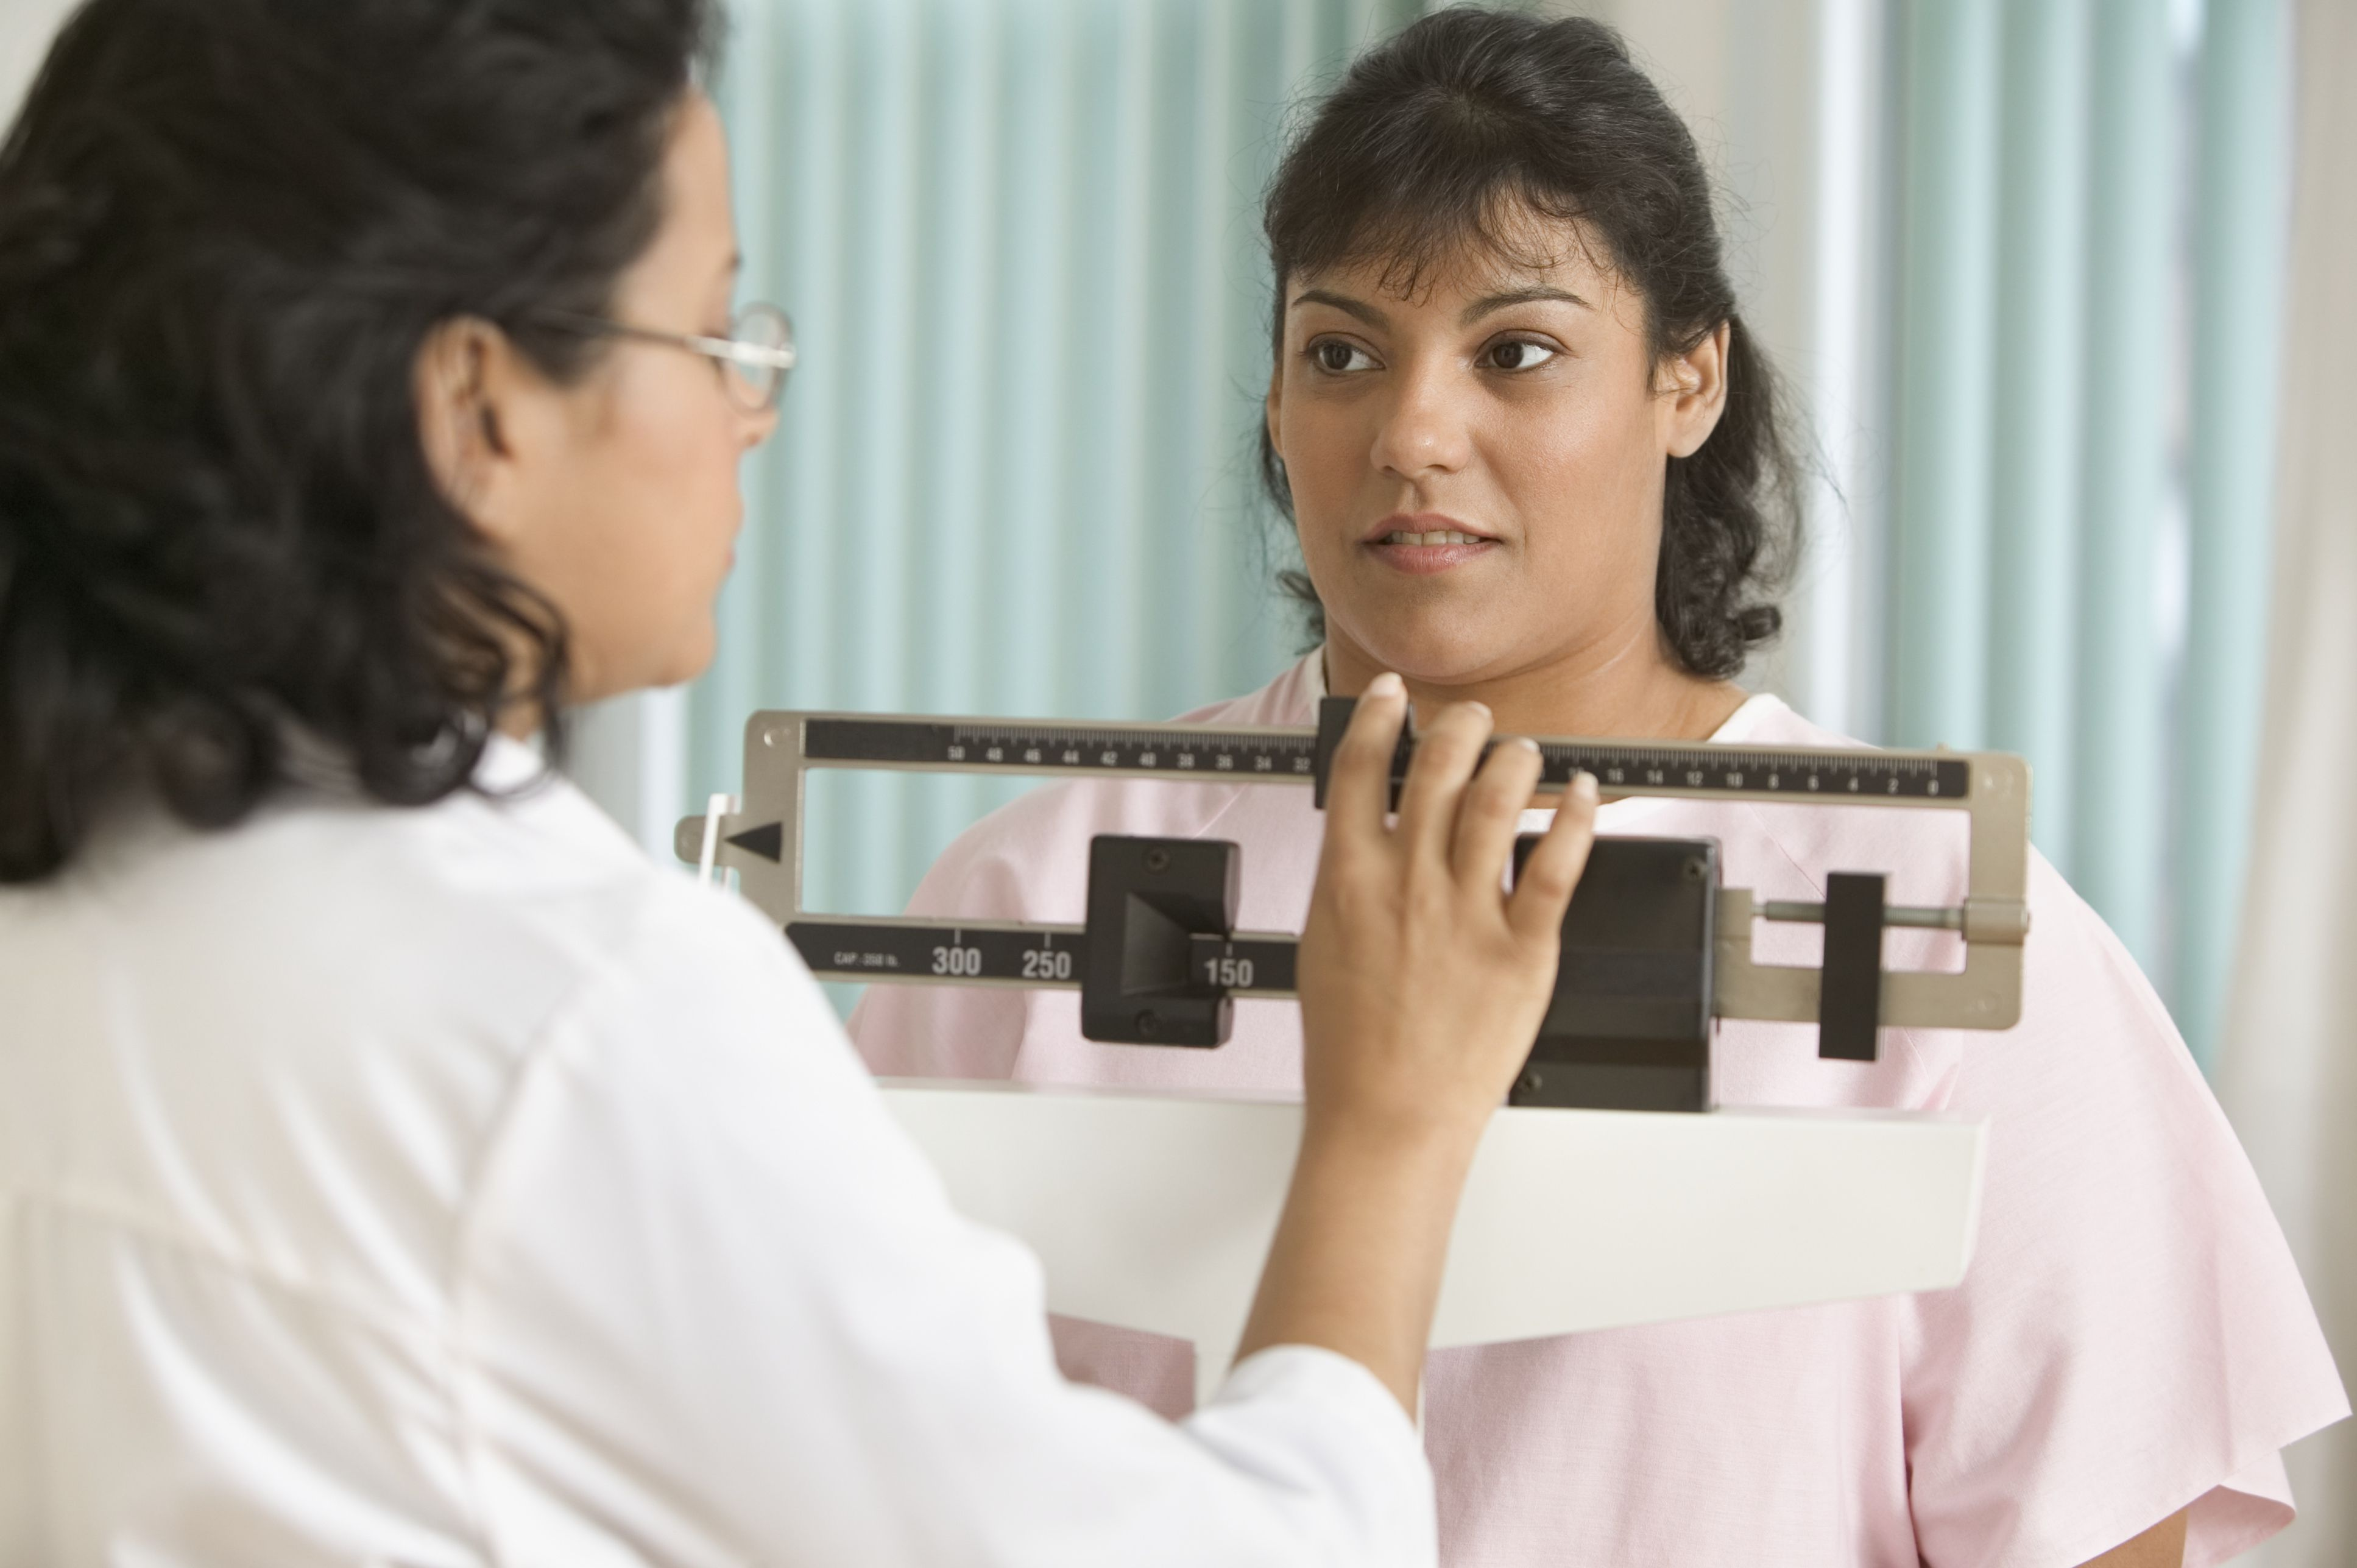 Bmi What Does The Body Mass Index Measure